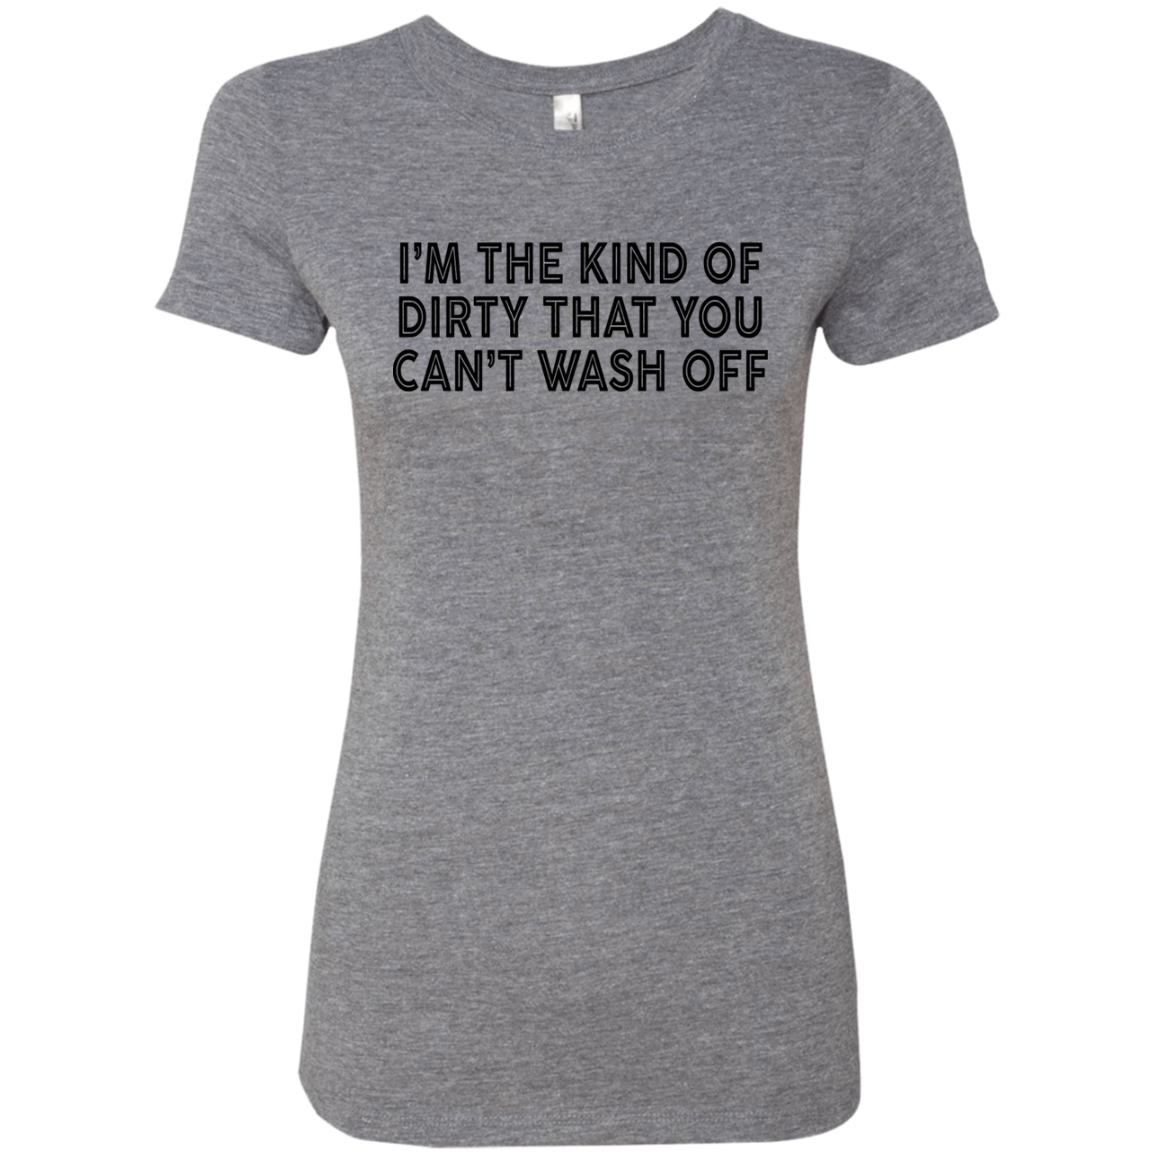 I'm The Kind Of Dirty You Can't Wash Off Women's Classic Tee